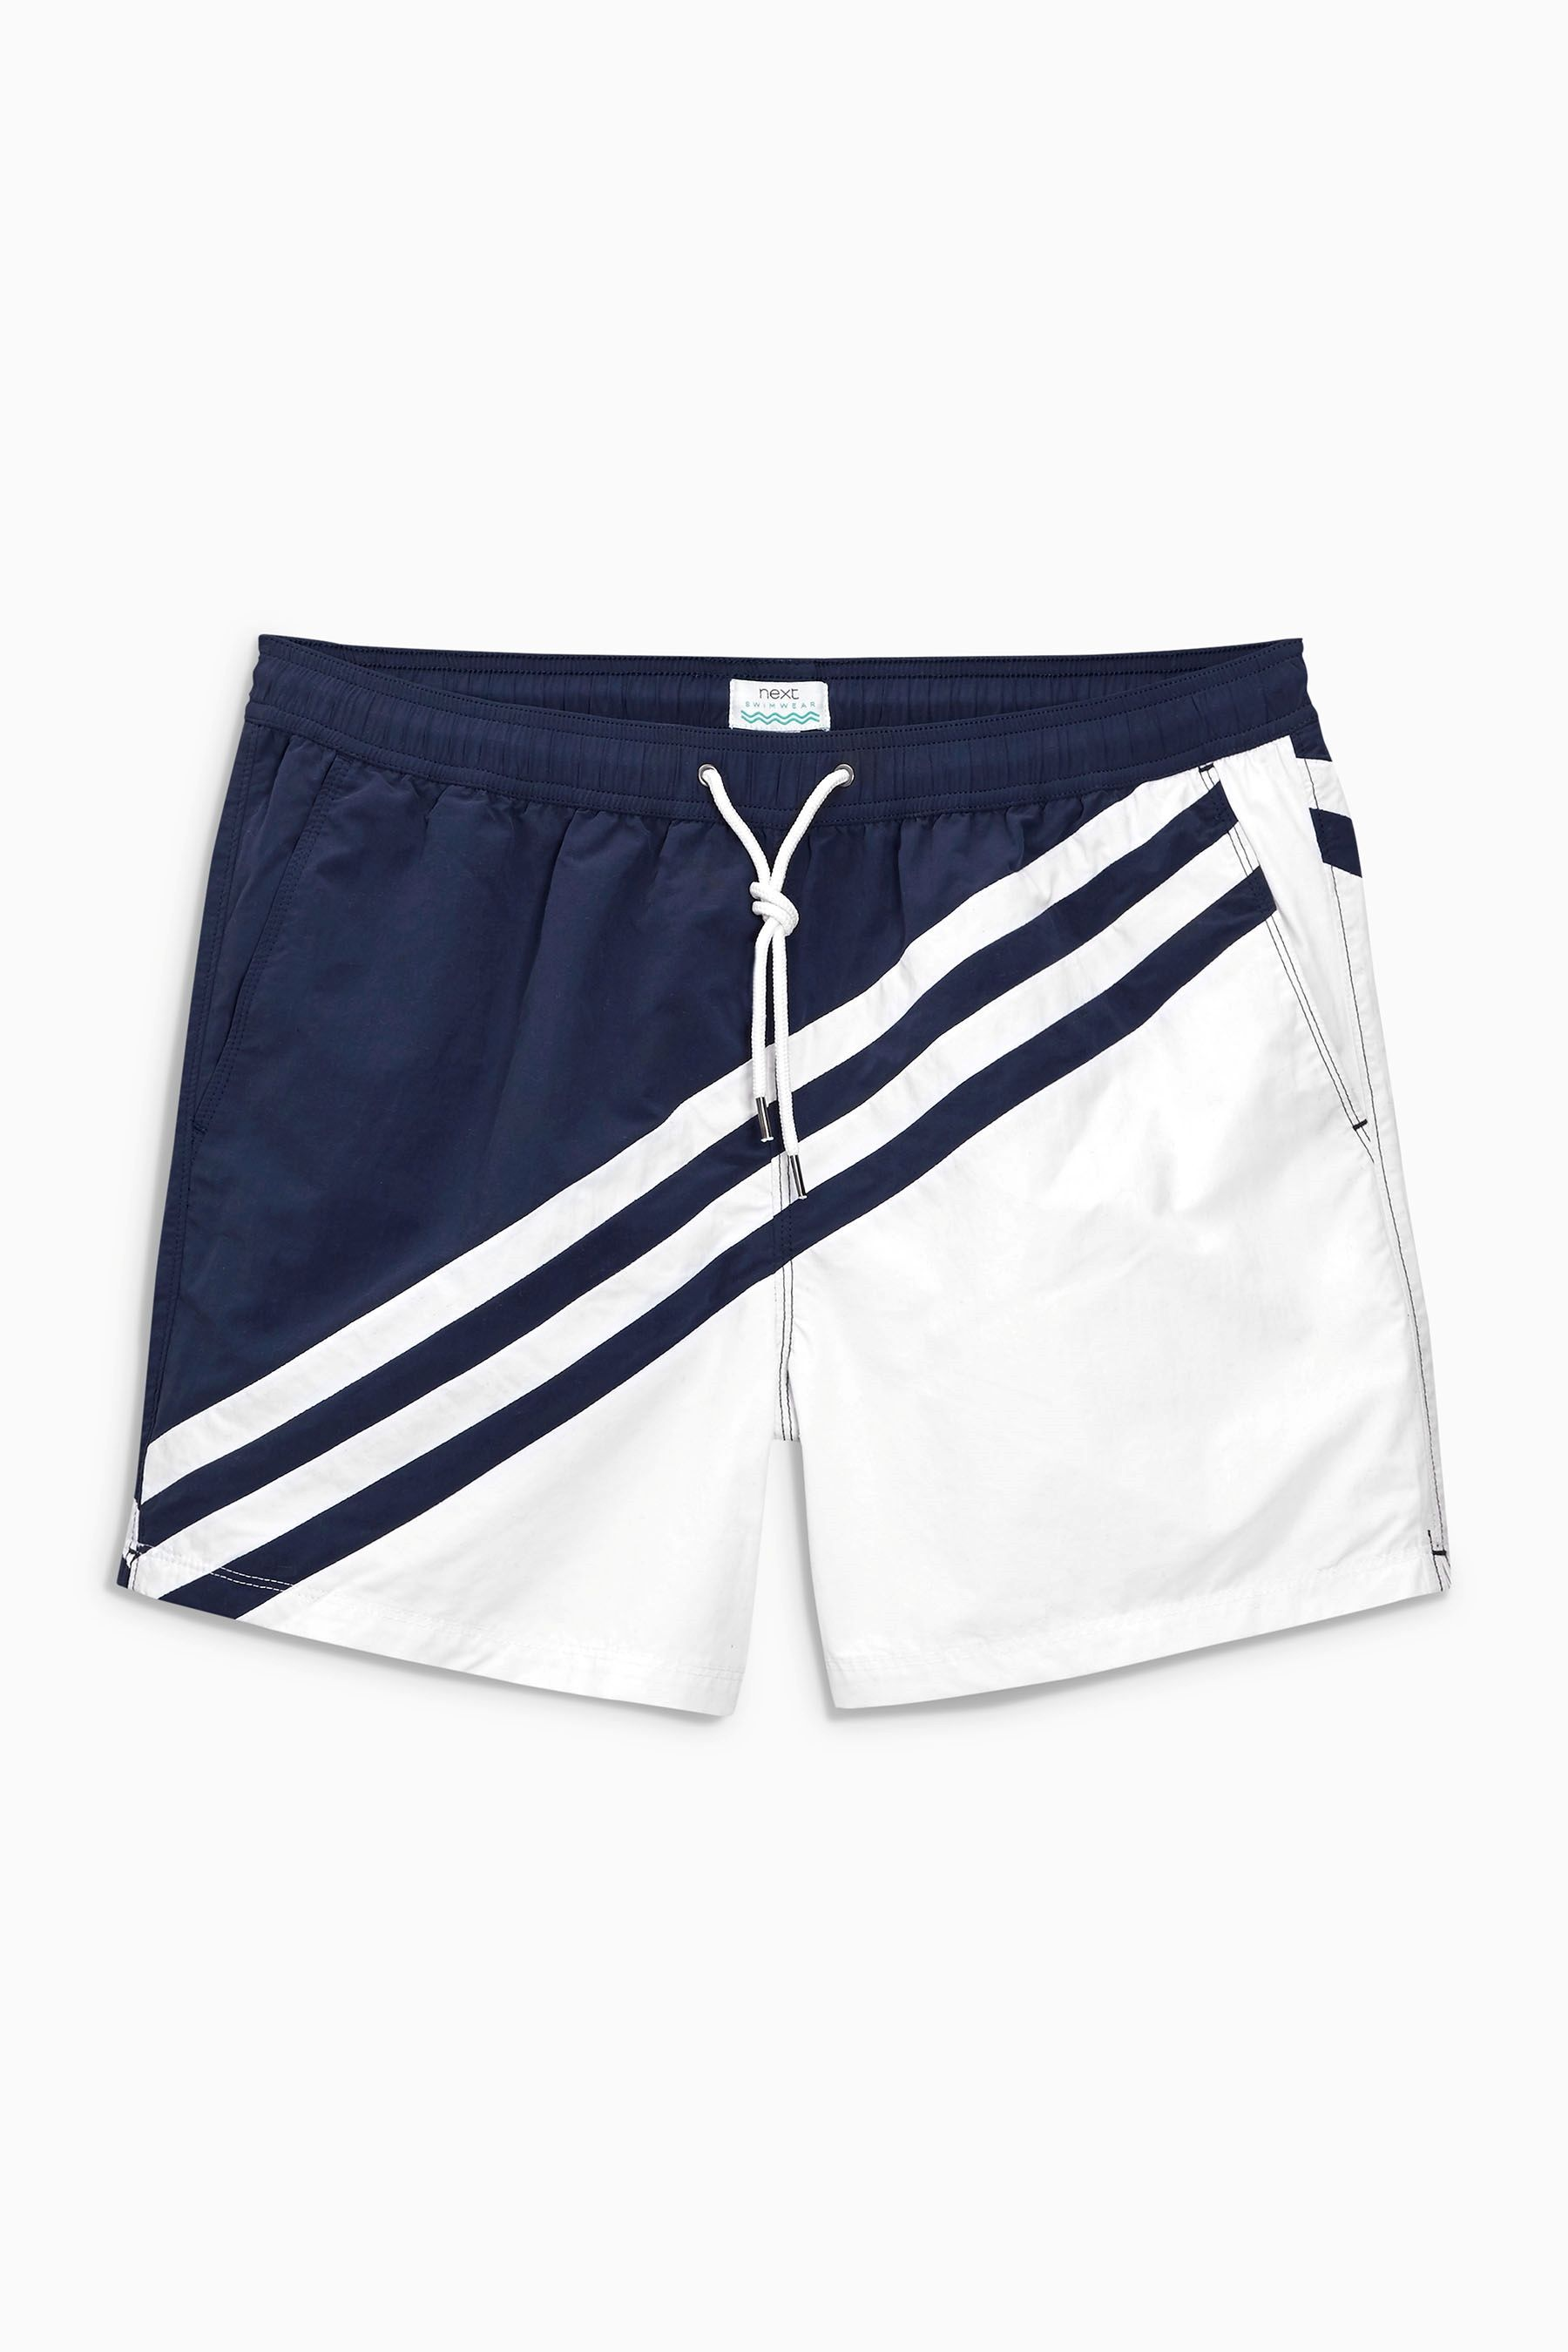 f637f9ebcbd07 Buy Navy/White Colourblock Swim Shorts from the Next UK online shop ...